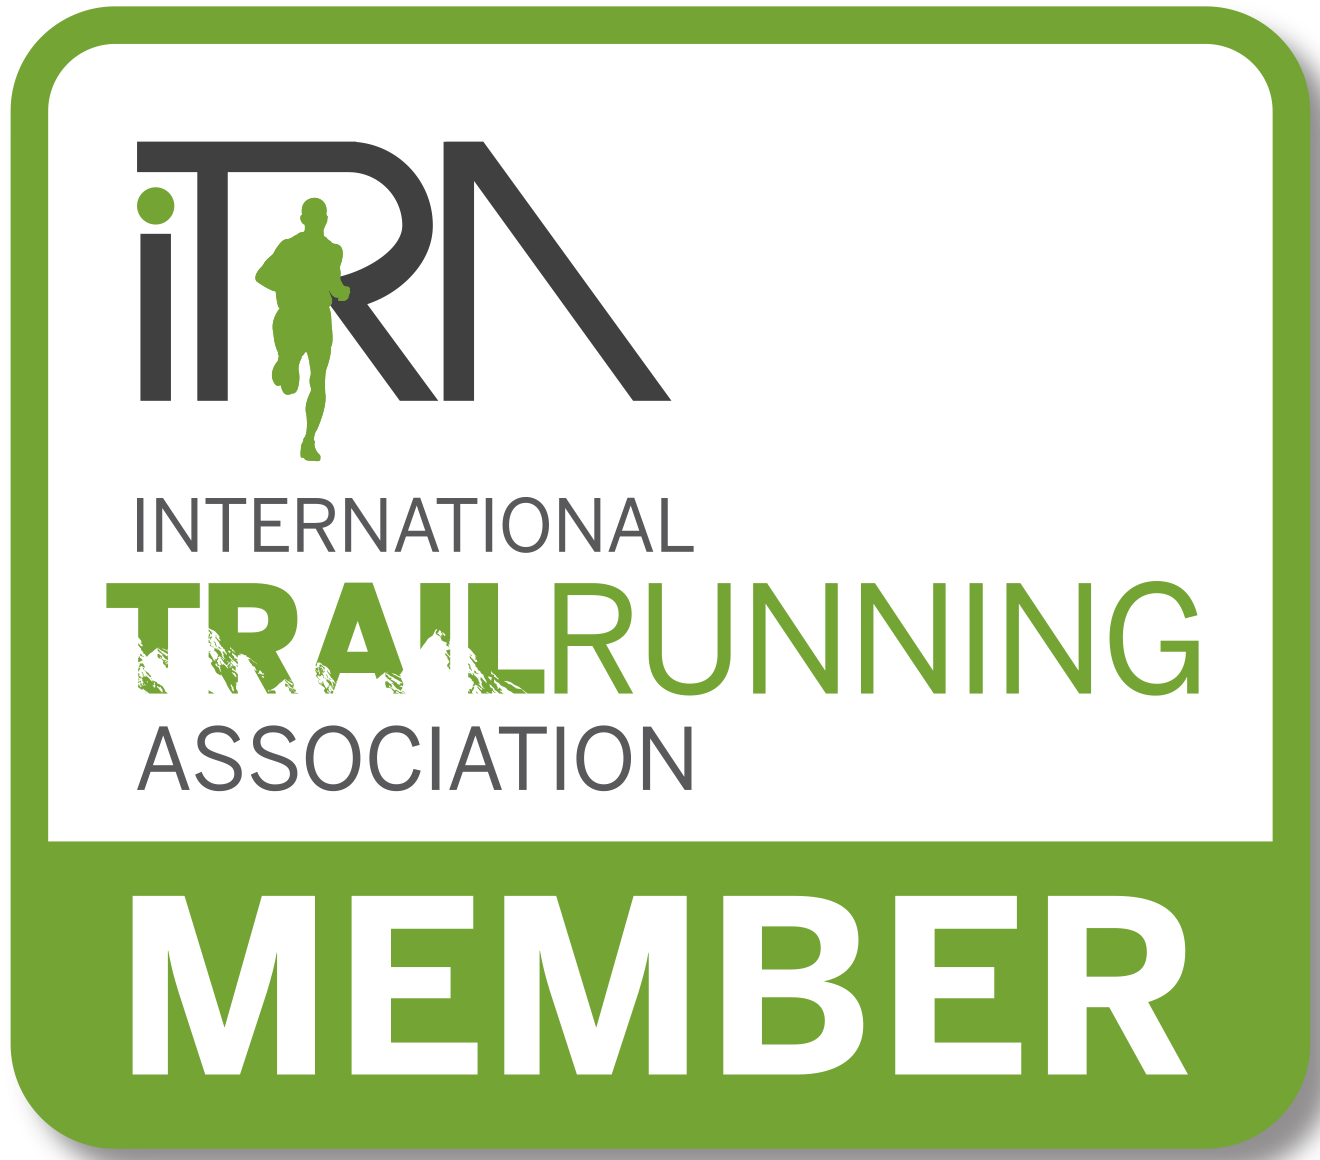 Itra-member-trail-running-association